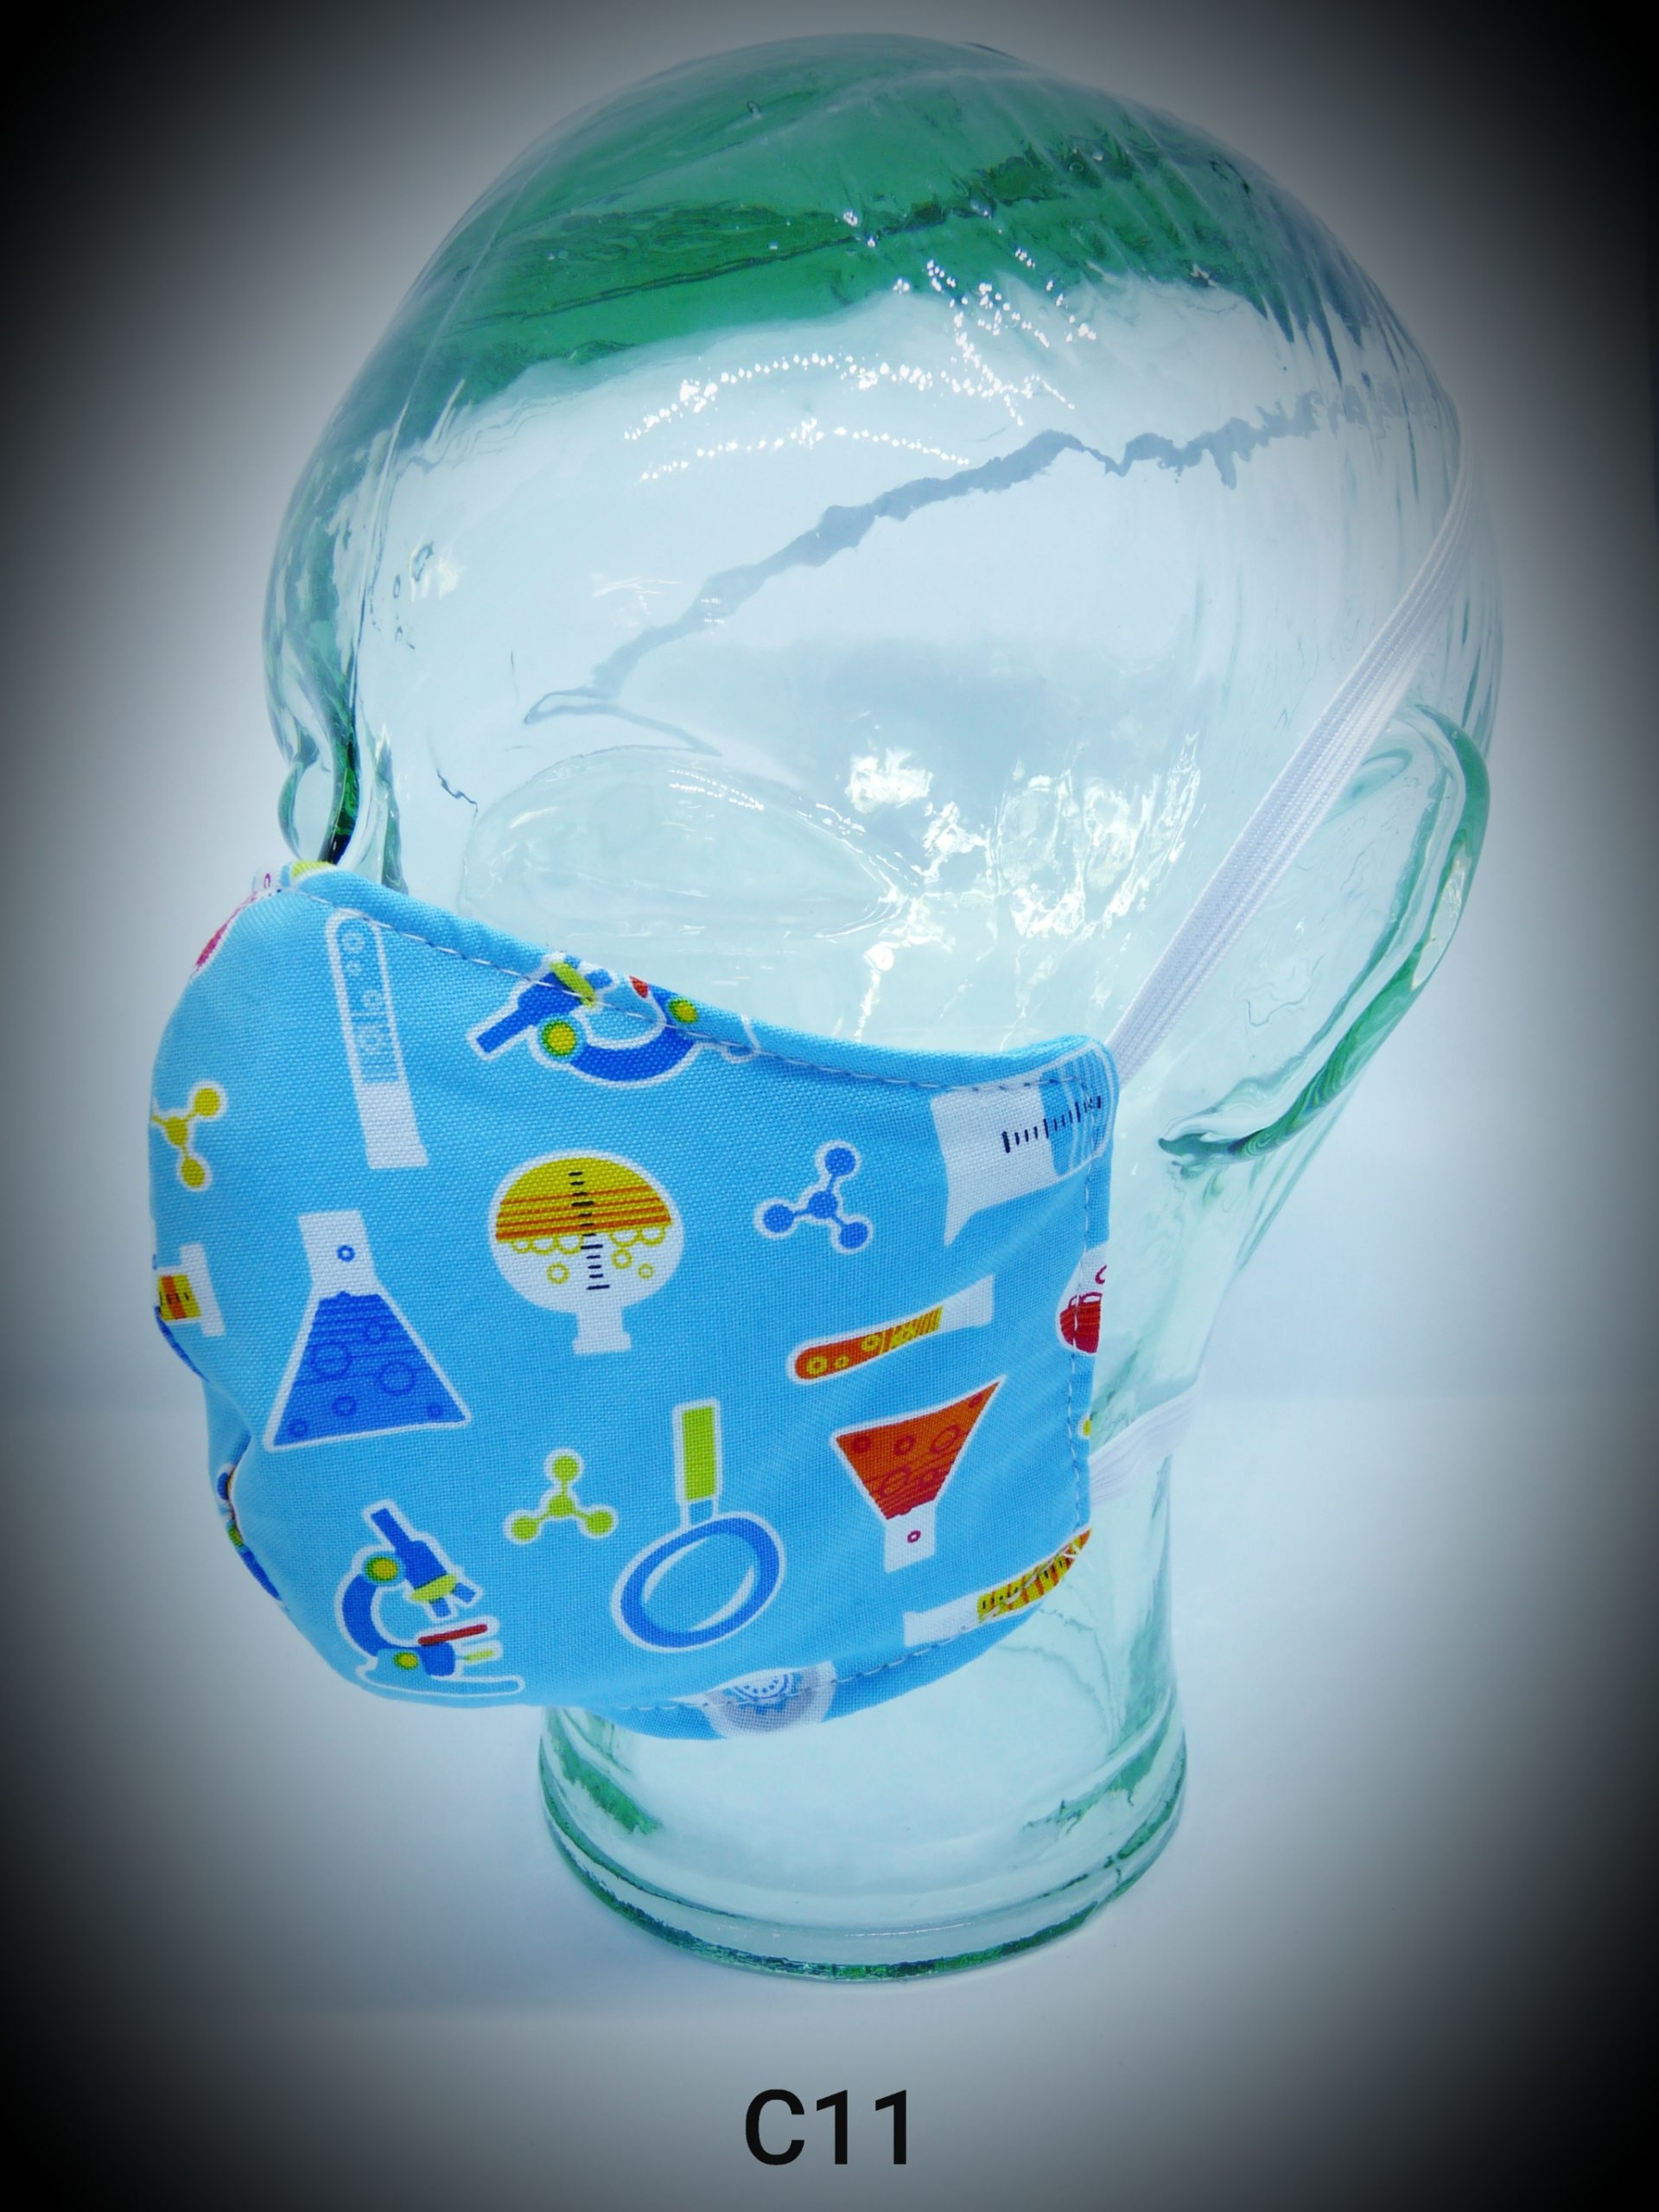 face mask washable reusable ppe c11 science fabric